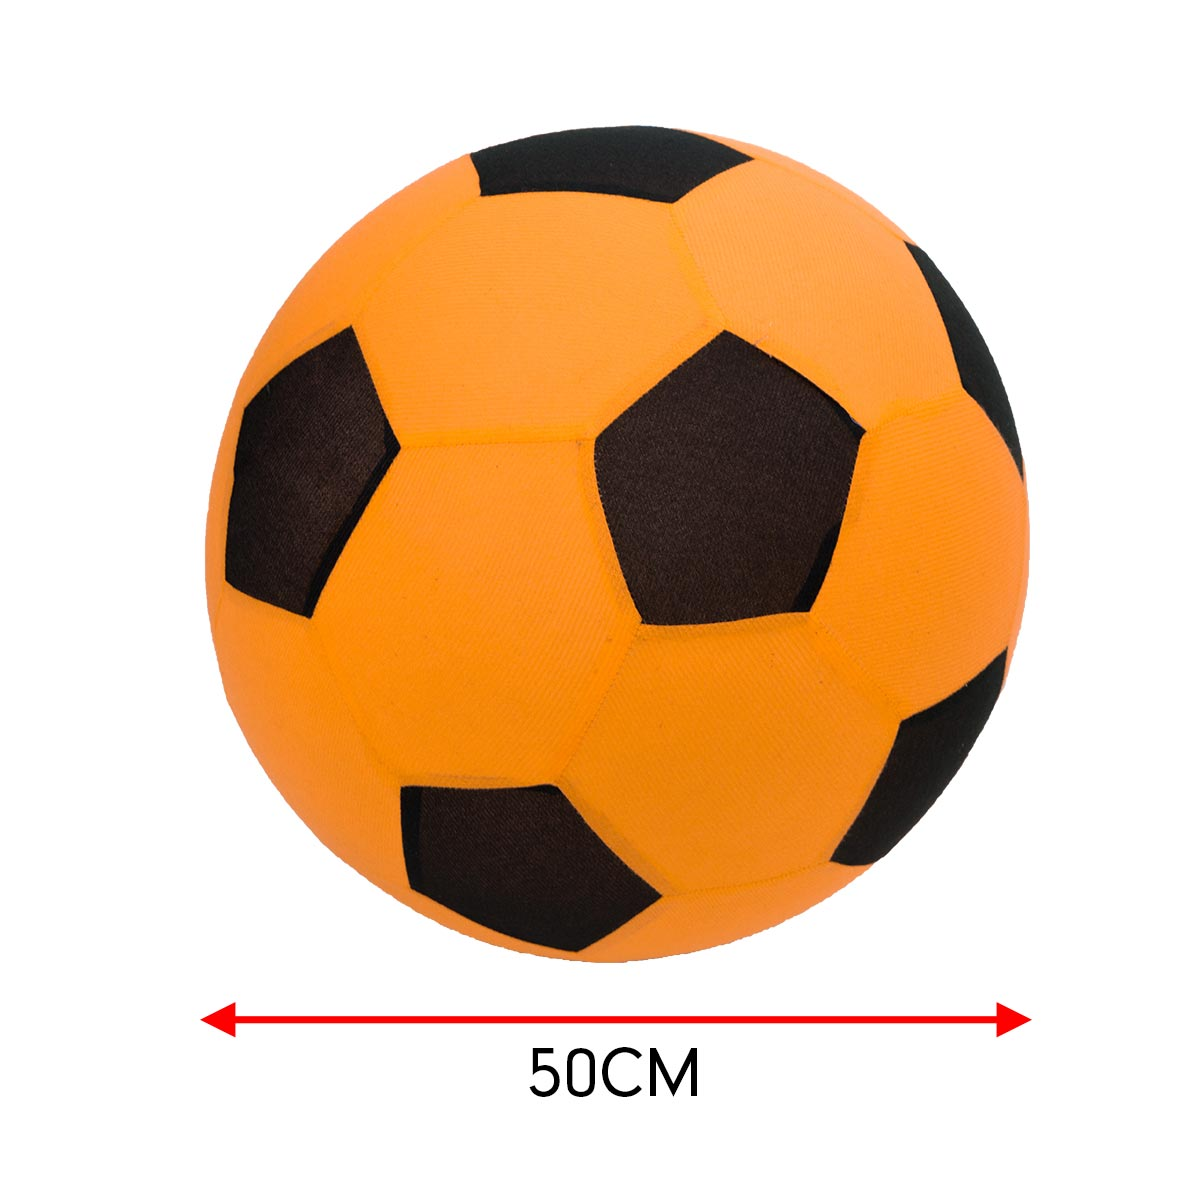 Trampoline Inflatable Football Play Ball Kids Soft Soccer- Orange